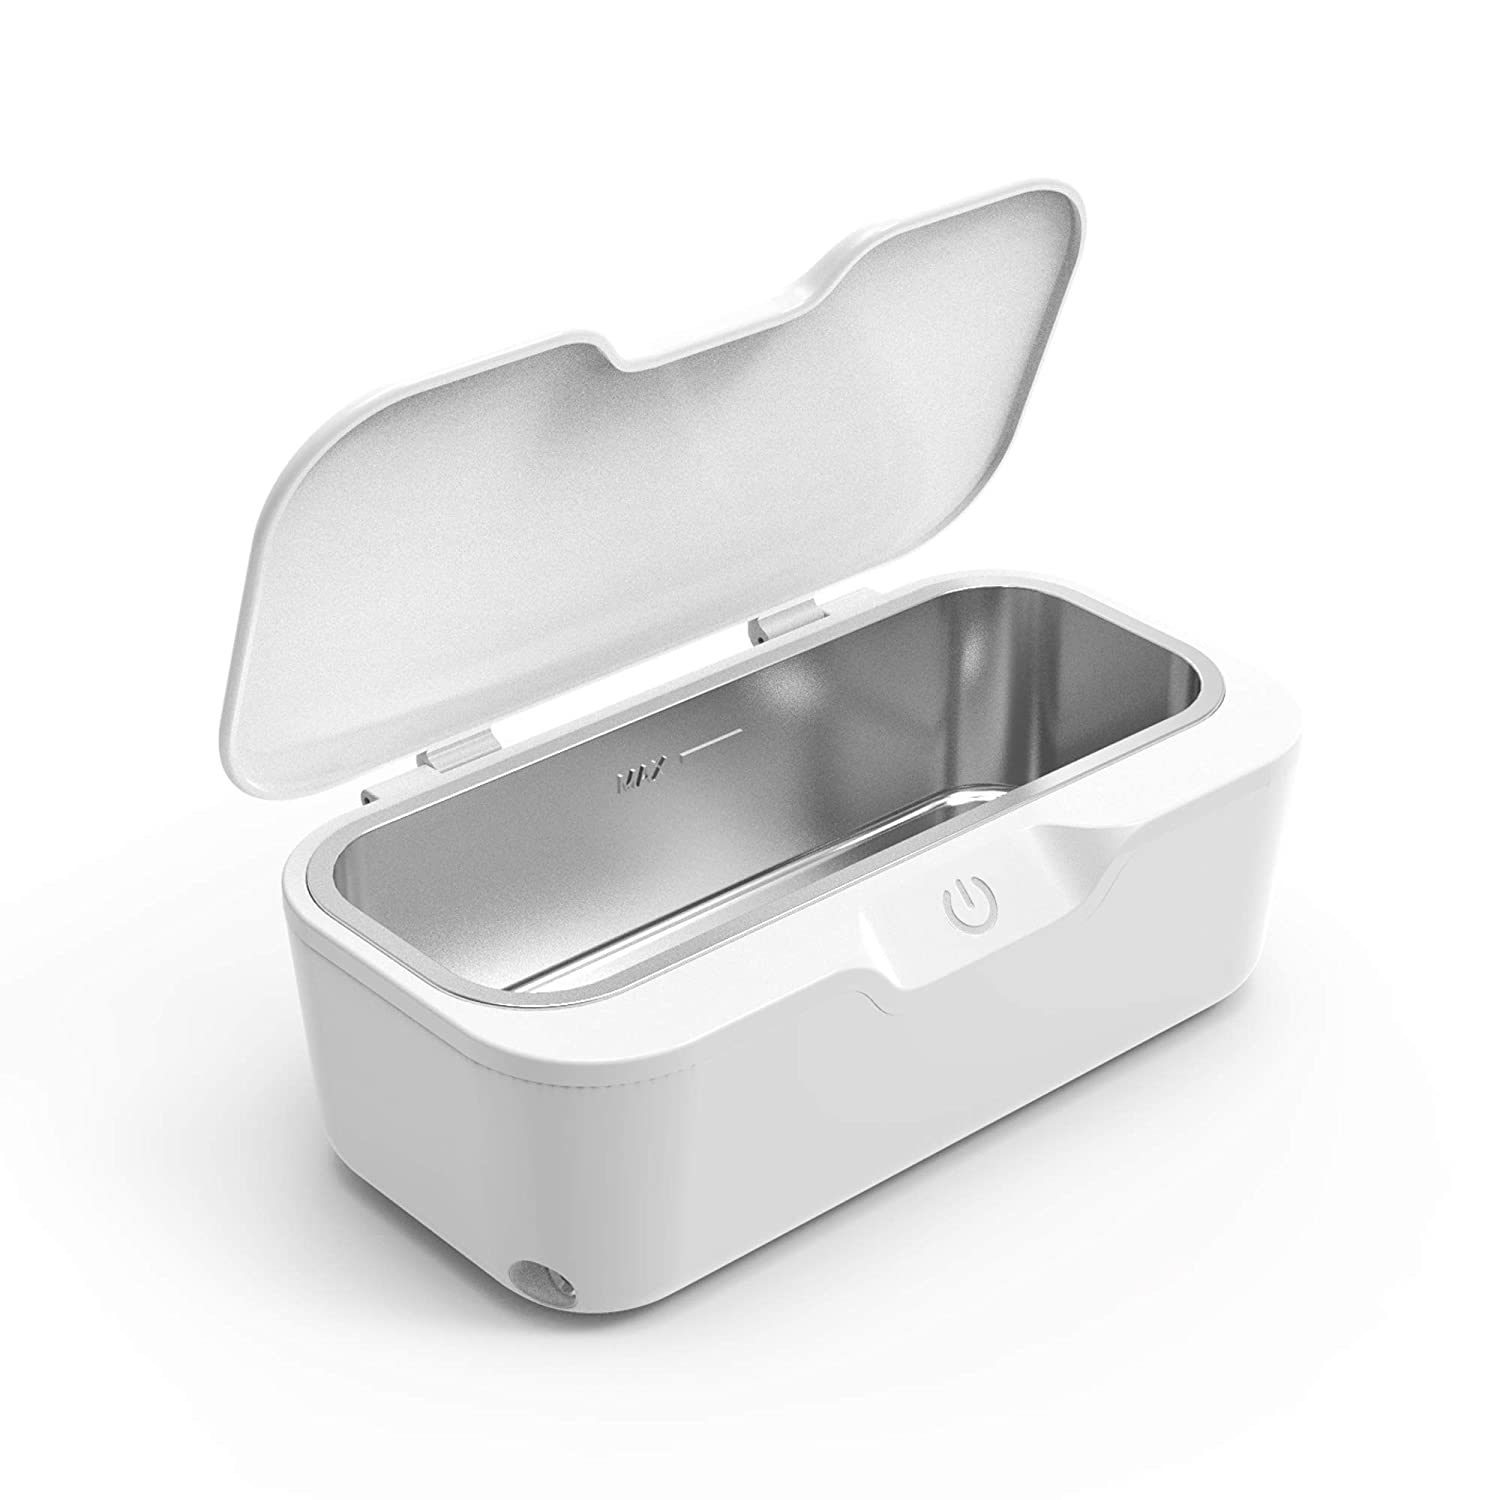 Ultrasonic Cleaner Professional Ultrasonic Jewelry Cleaner Portable Rings Eyeglasses Watches Denture Makeup Brush Razors Cleaning Machine for 25W (White)